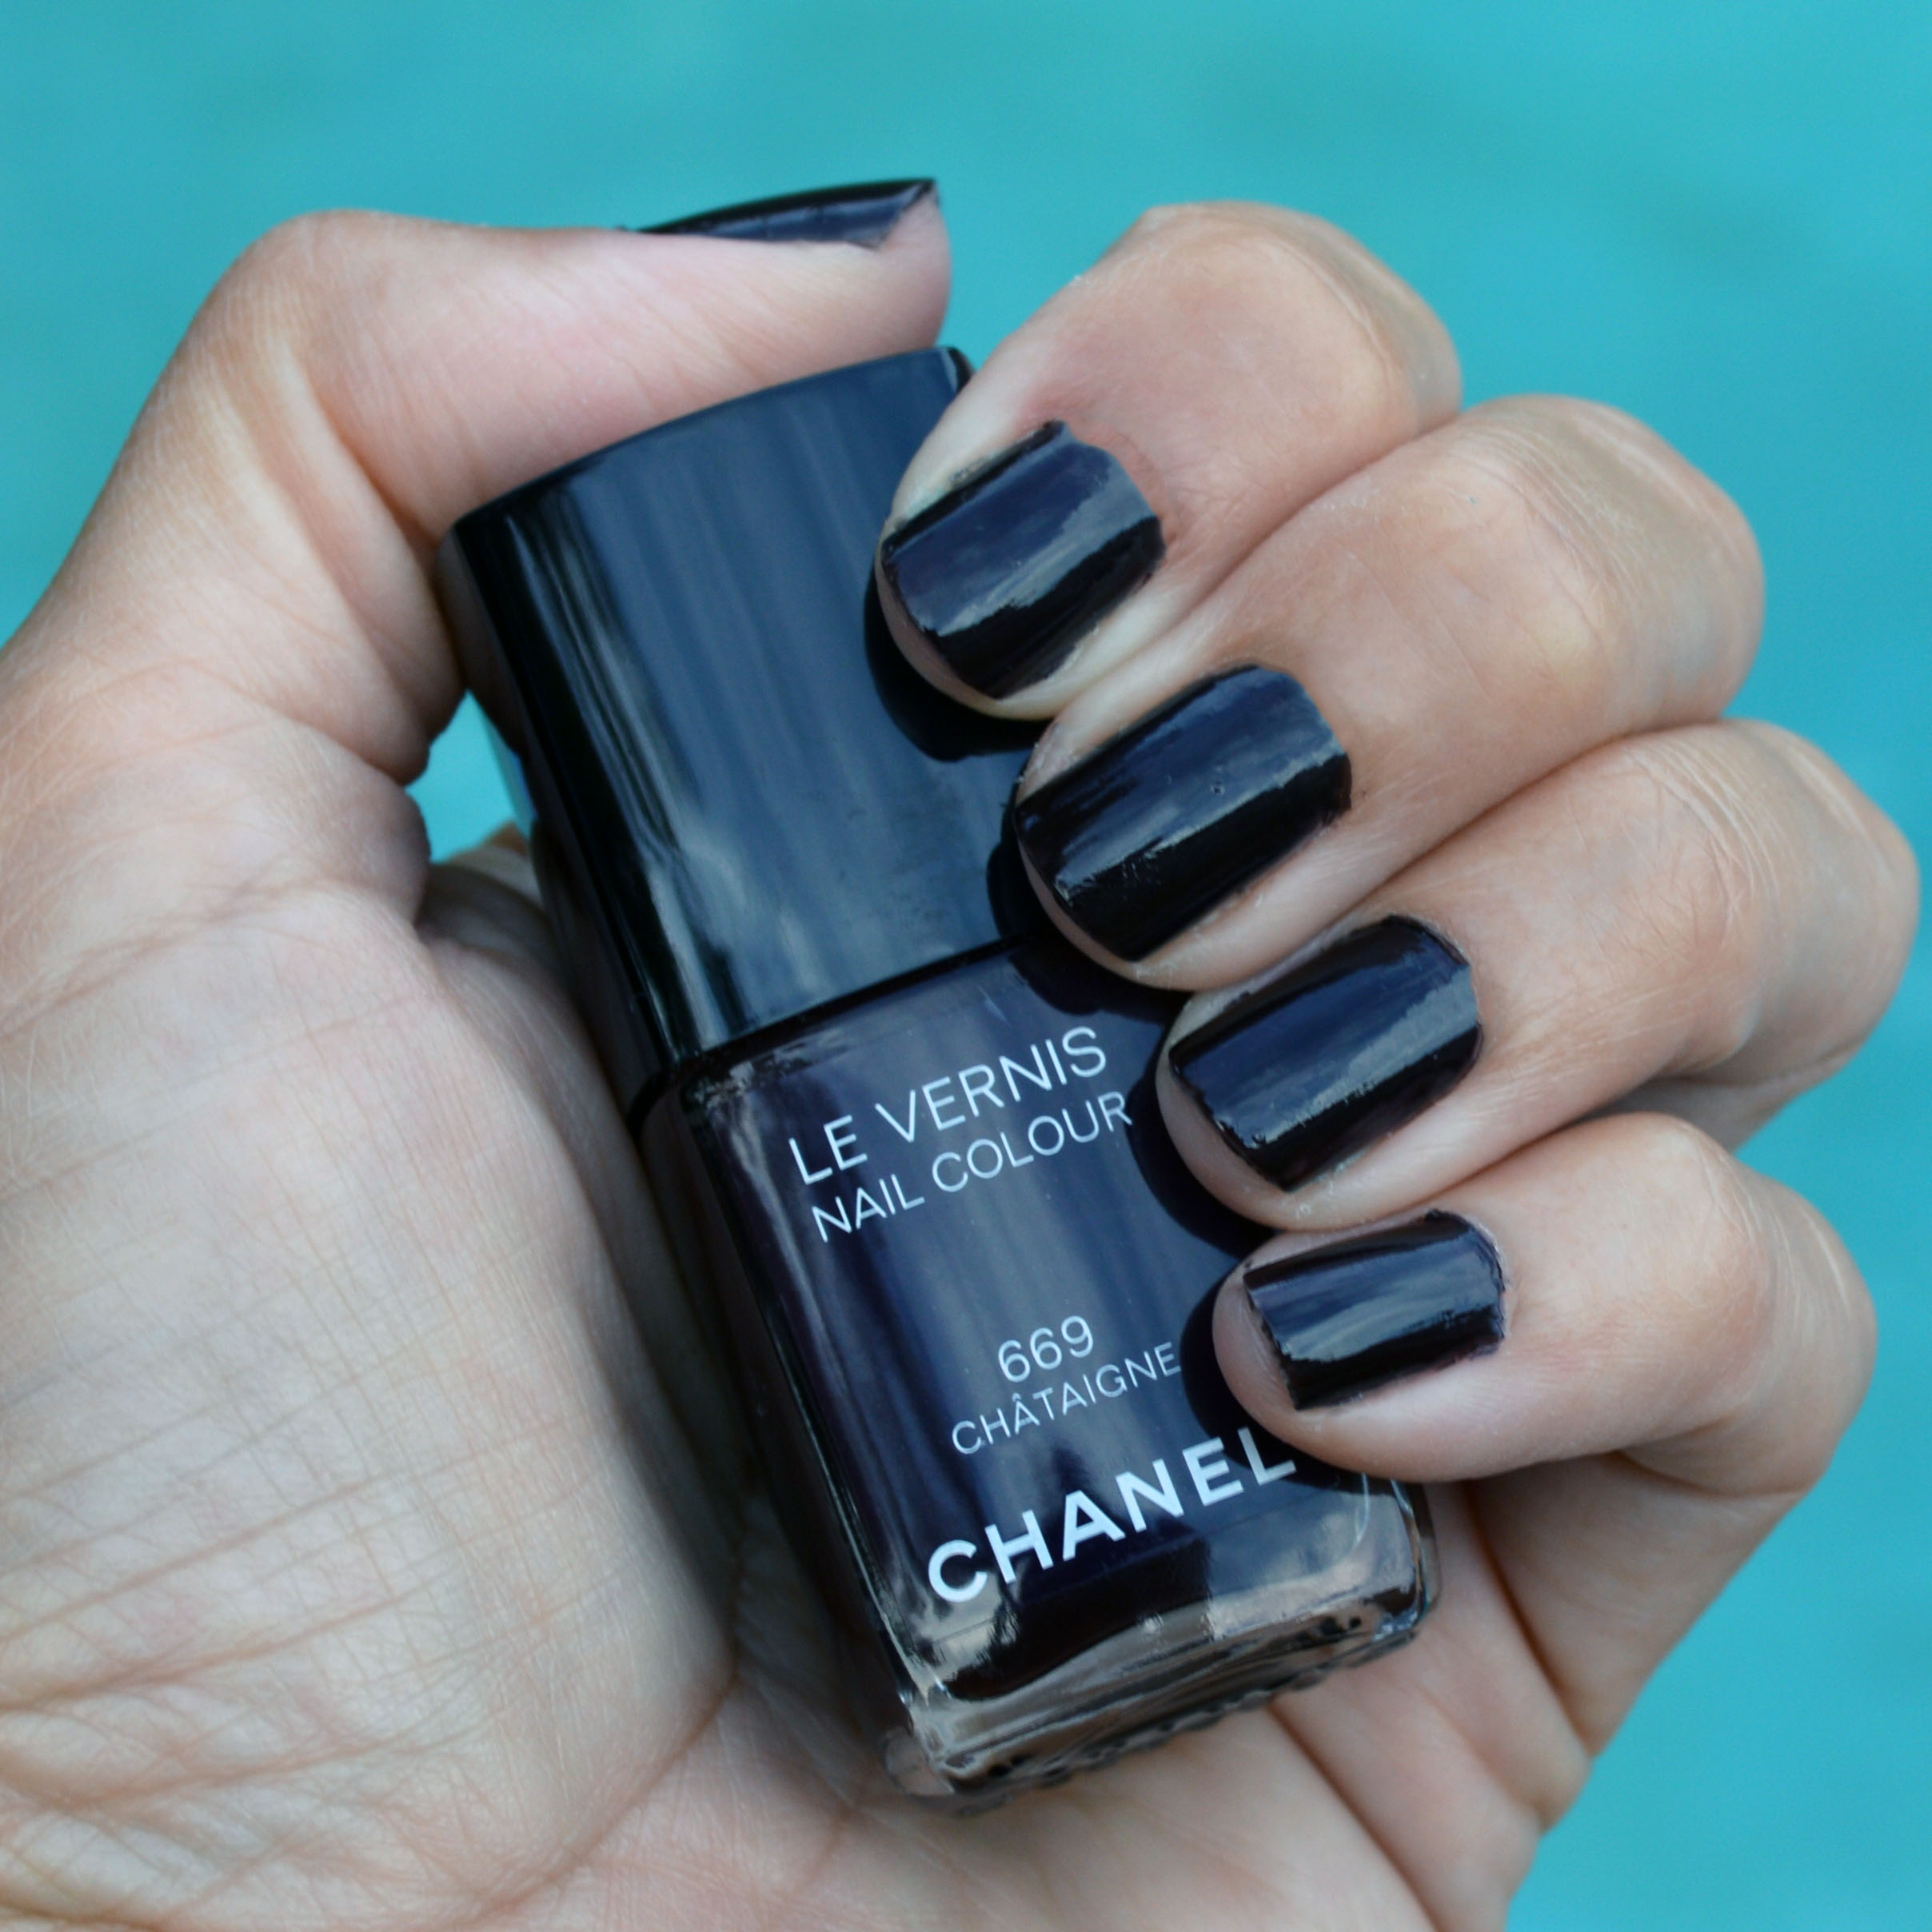 Chanel Chataigne Nail Polish for Fall 2015